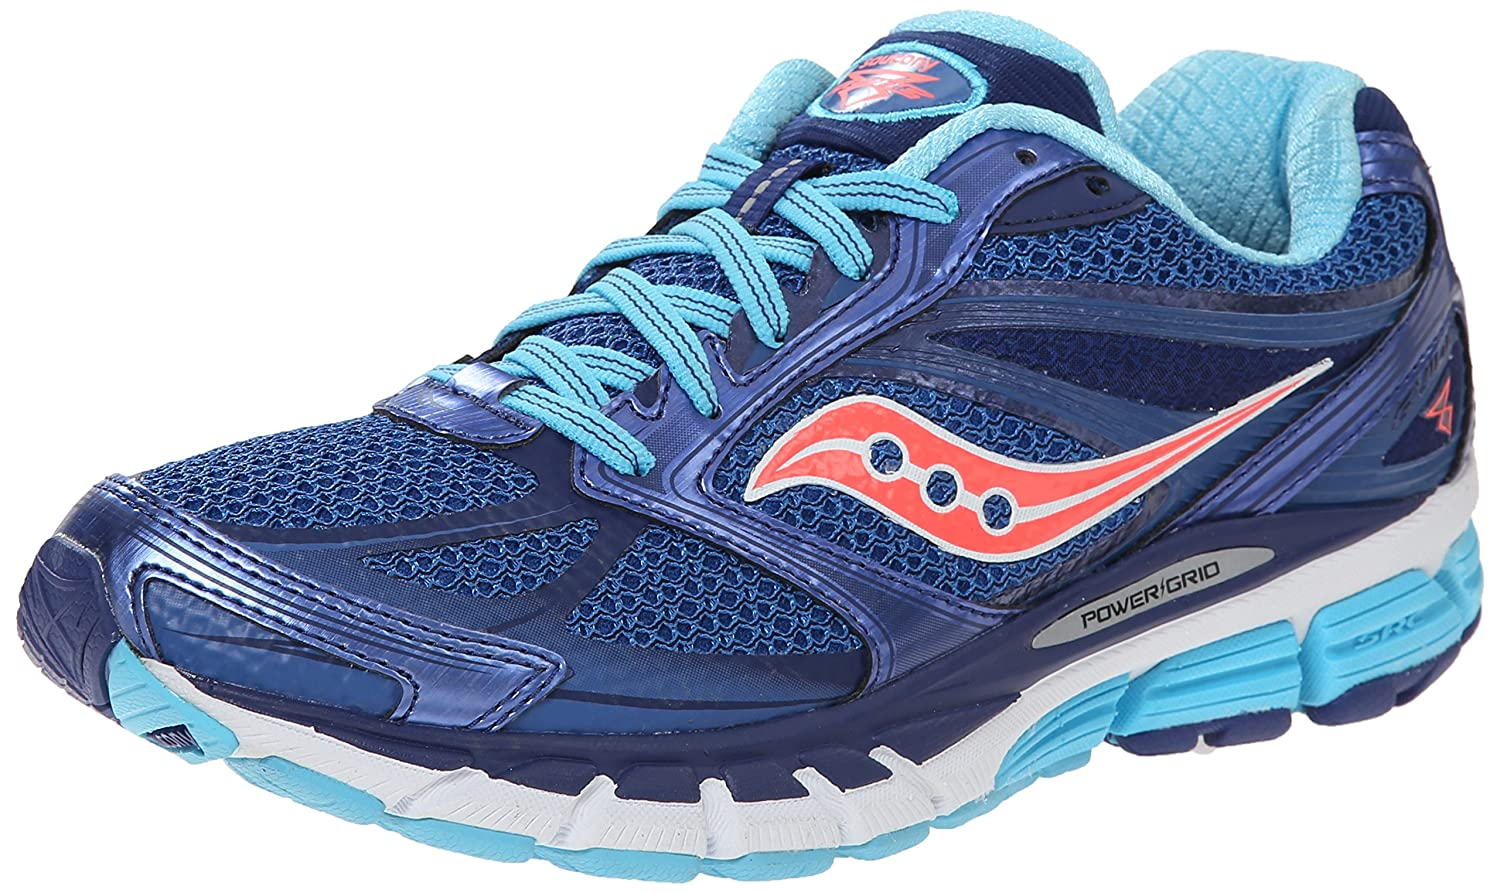 Saucony Women's Guide 8 Running Shoe B00PJ834JW 6 B(M) US|Blue/Navy/Coral